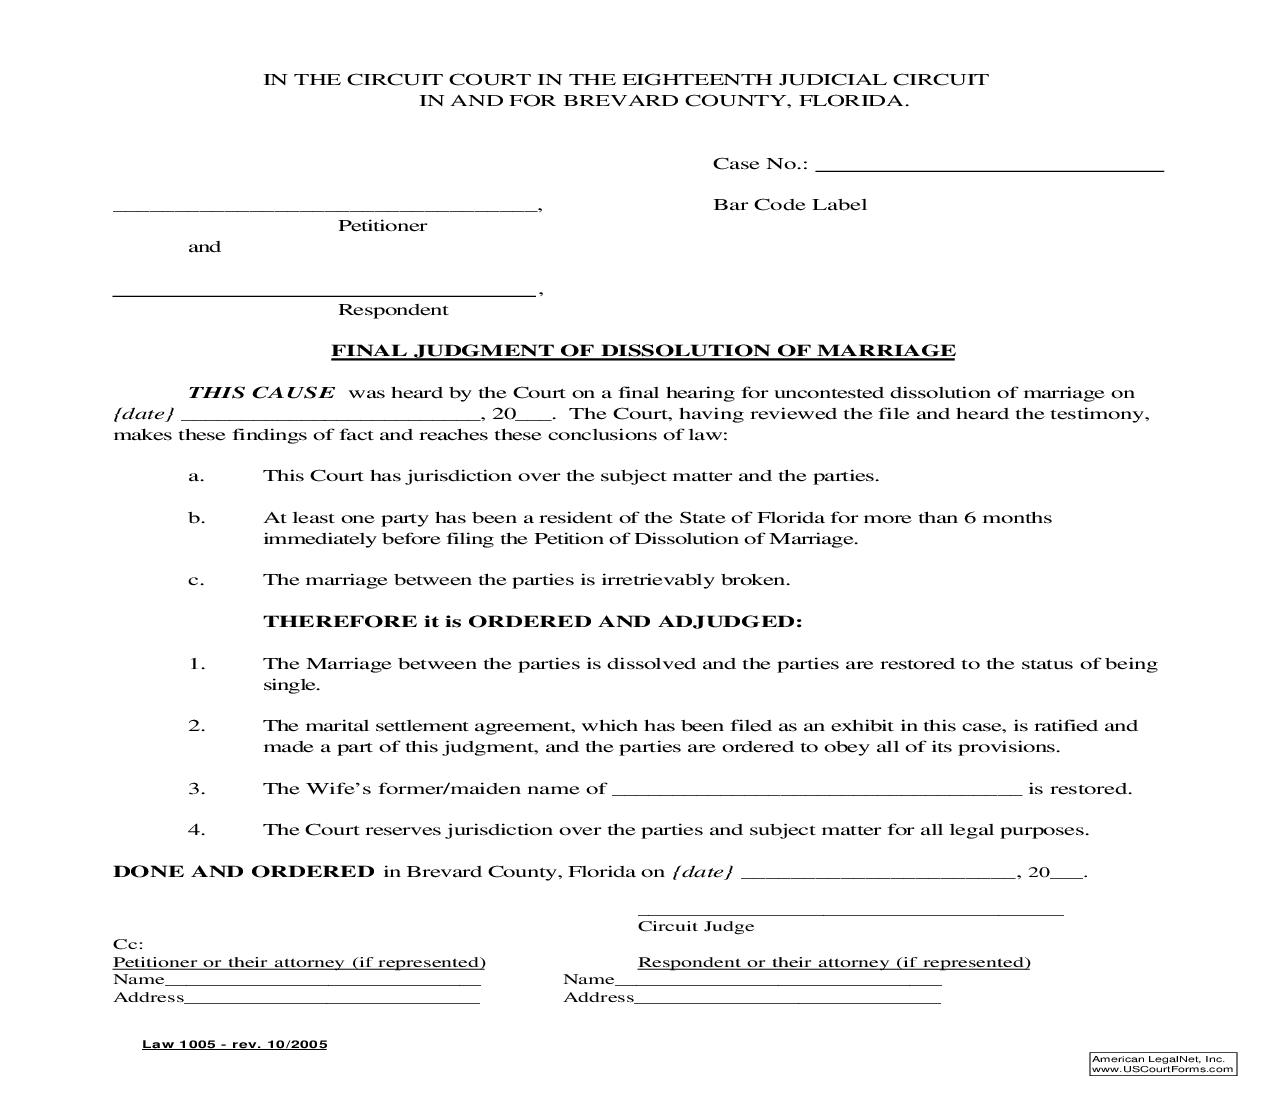 Final Judgment Of Dissolution Of Marriage With Property But No Dependent Or Minor Children (Uncontested) {Law 1005} | Pdf Fpdf Doc Docx | Florida